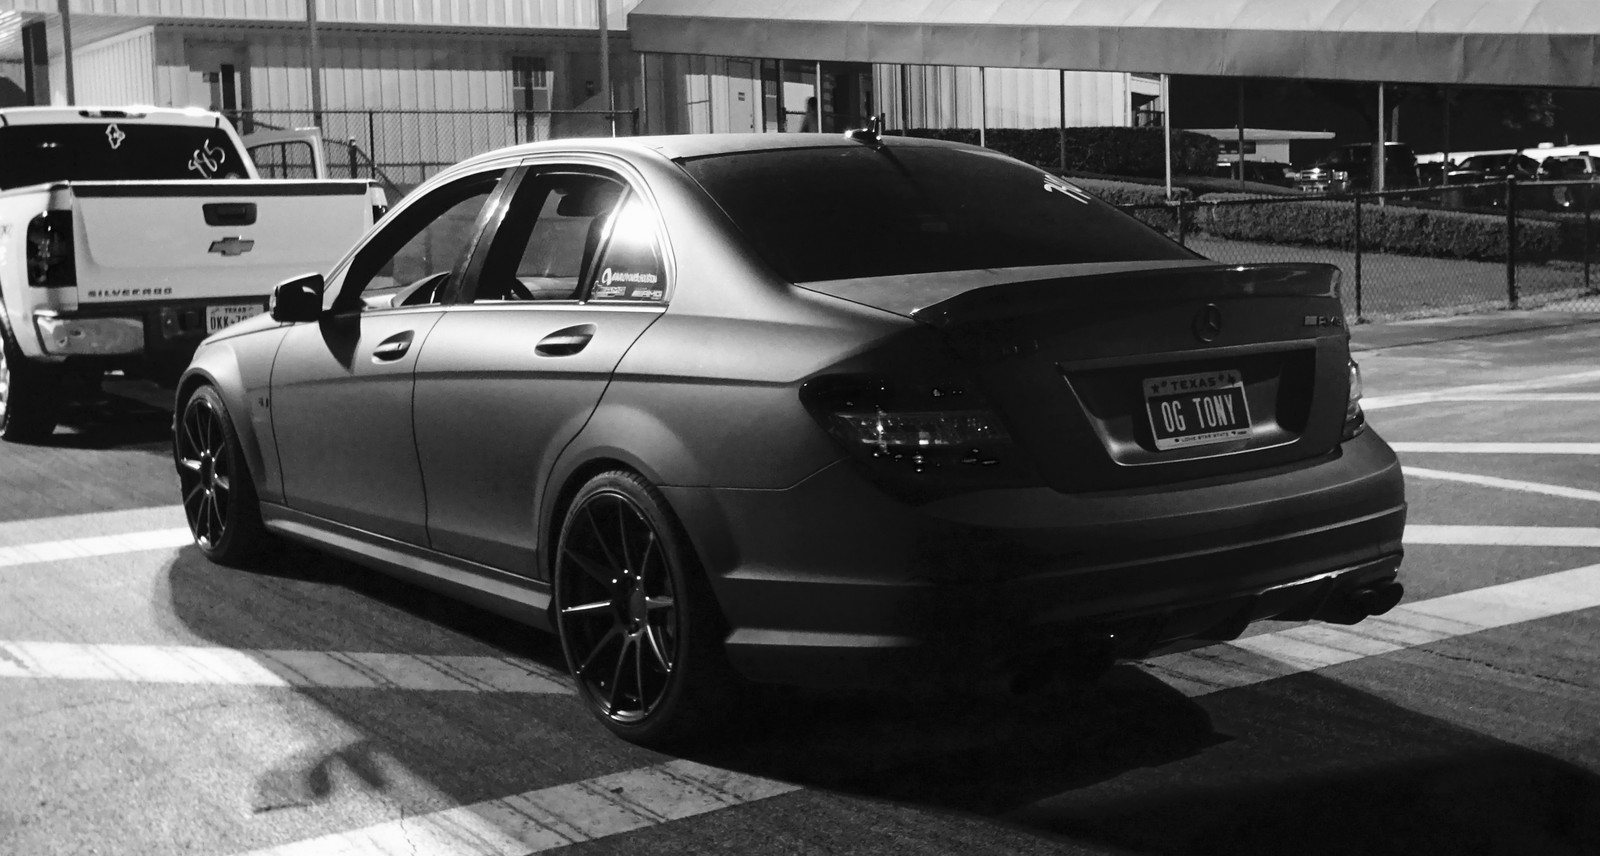 2010 Mercedes Benz C63 AMG 14 Mile Drag Racing Timeslip